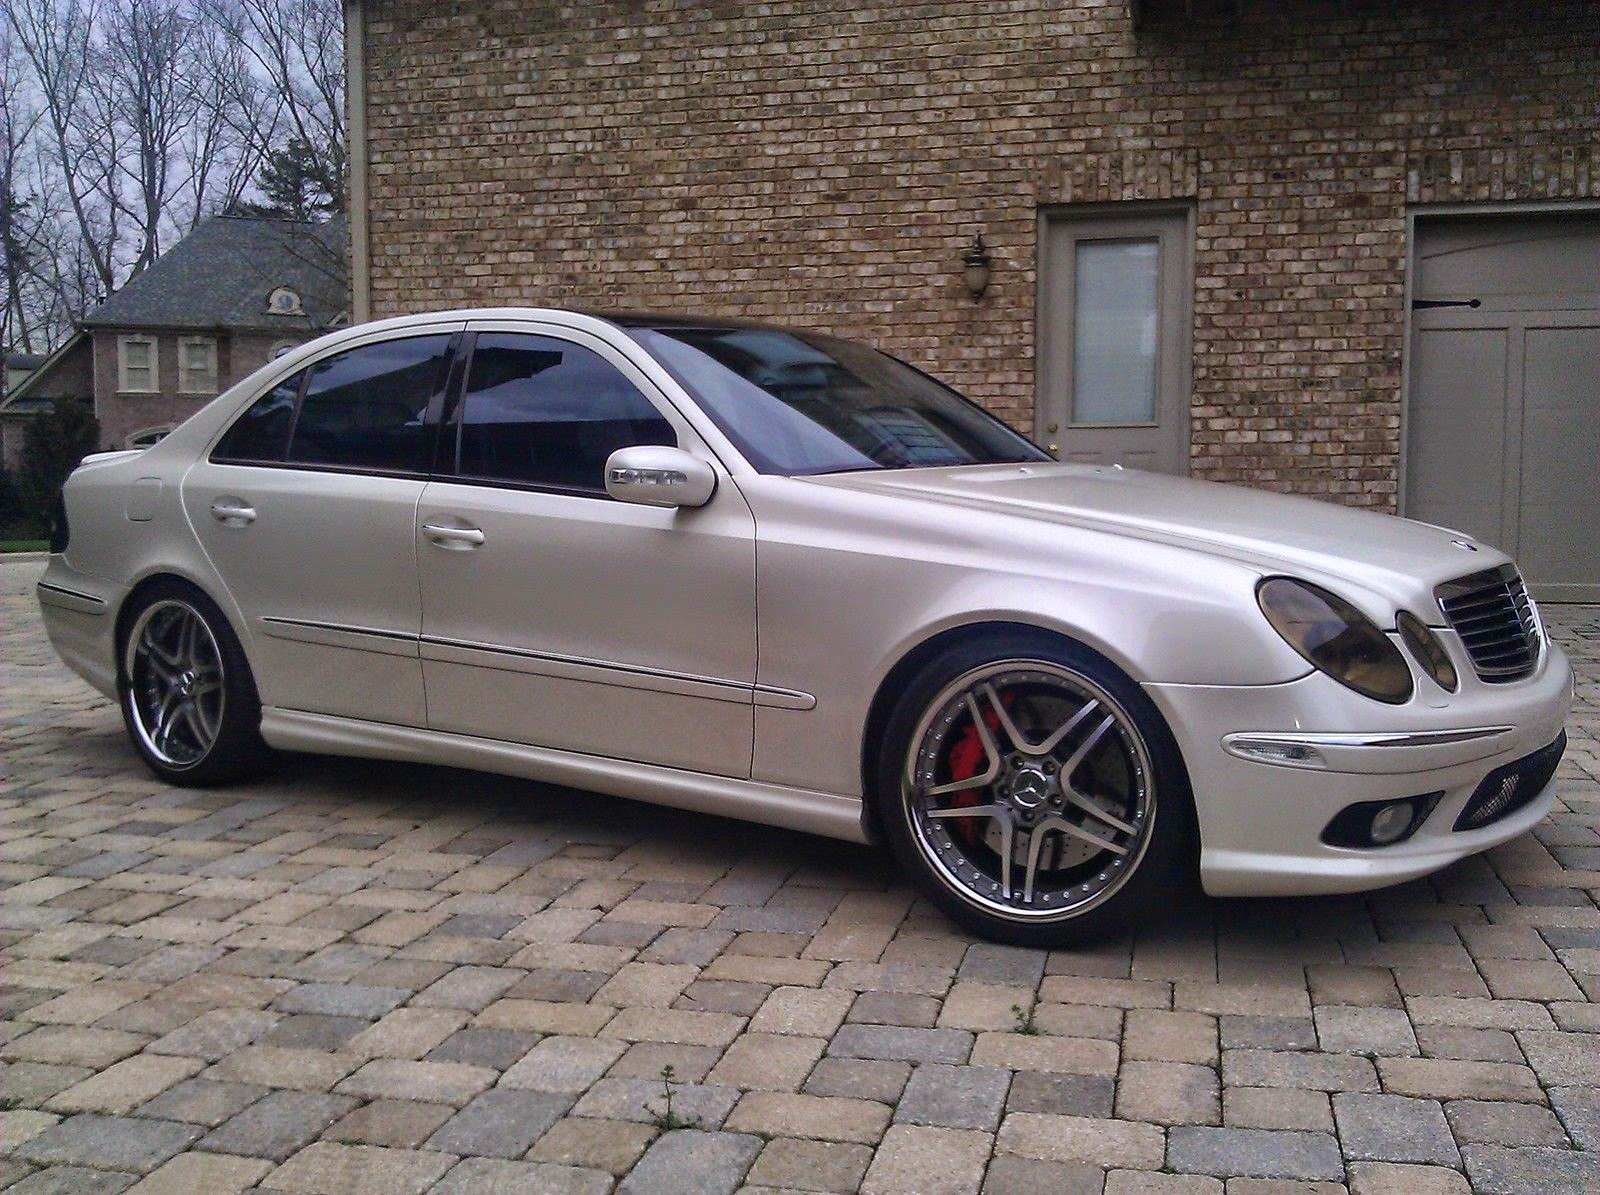 Mercedes benz w211 e55 amg on autobahn wheels benztuning for Mercedes benz wheel